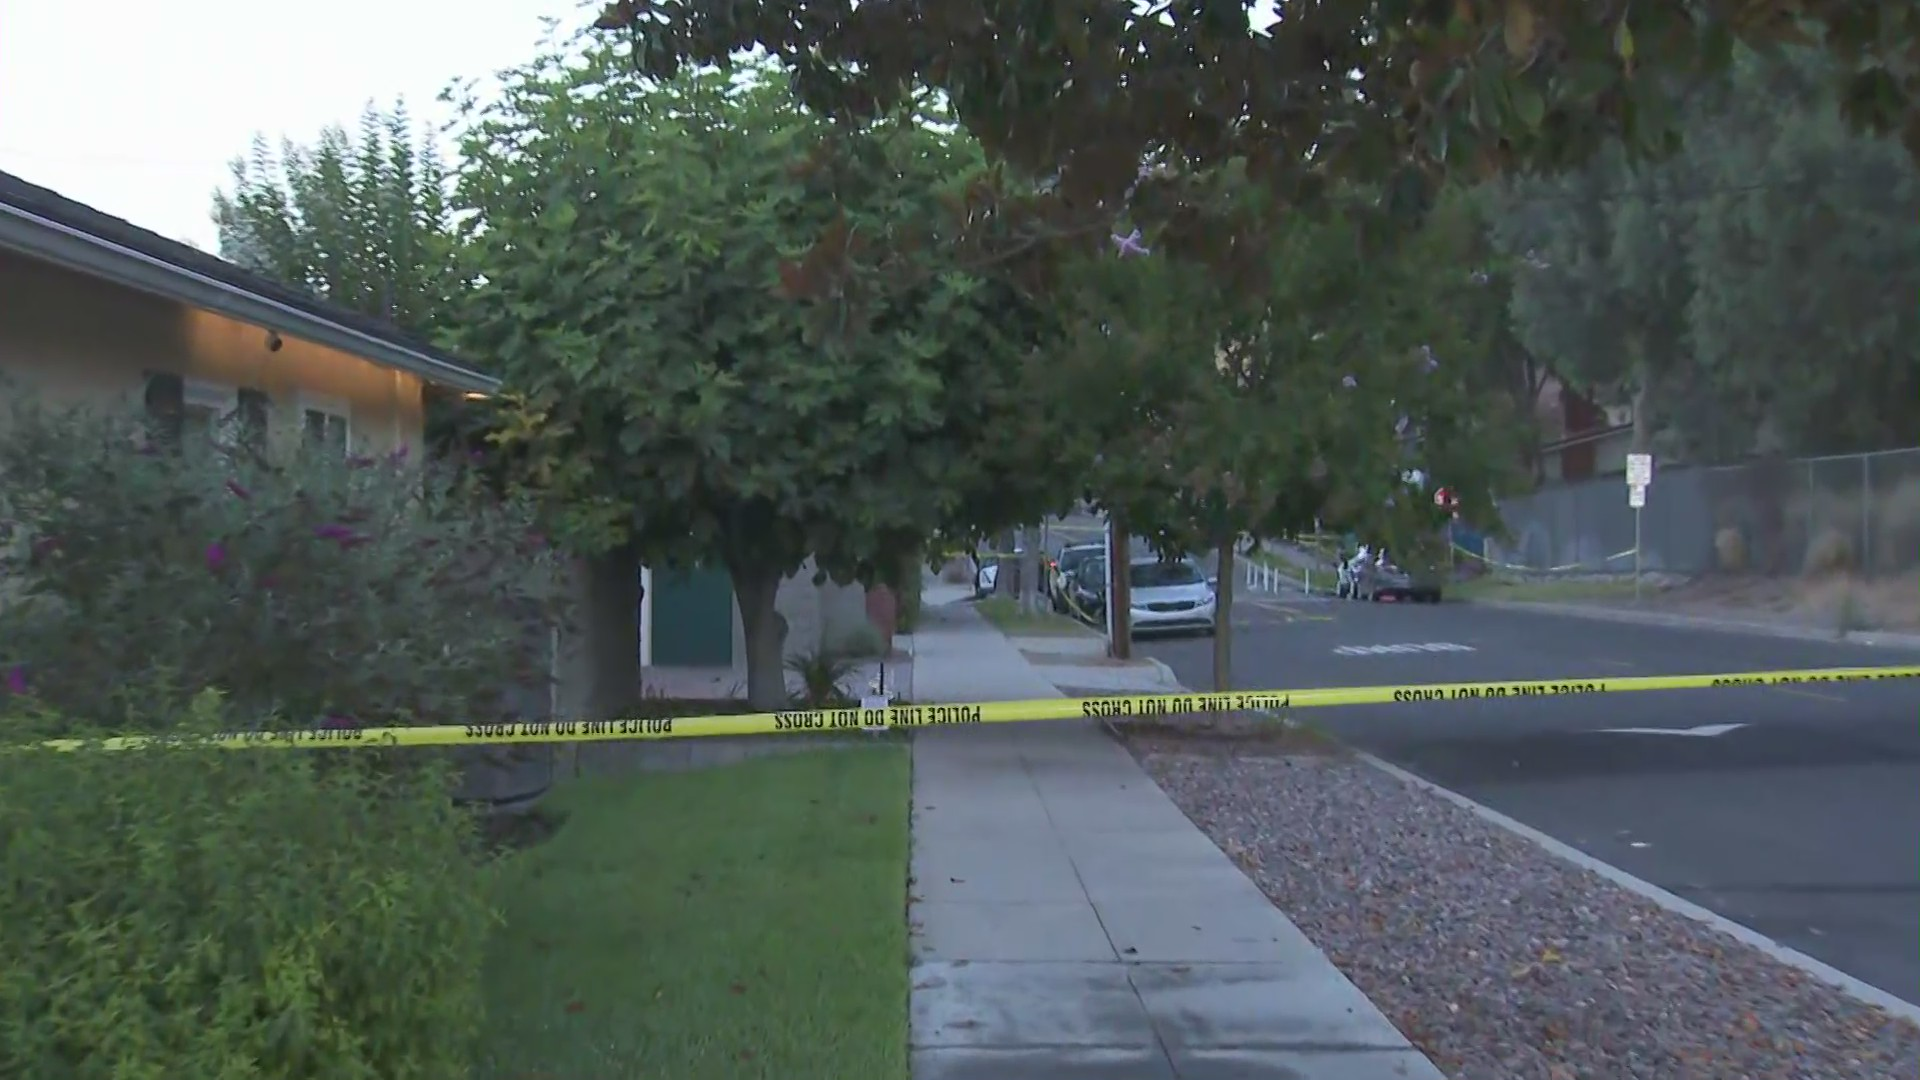 A crime scene tape surrounds a home where a deadly shooting investigation was underway on July 21, 2020. (KTLA)